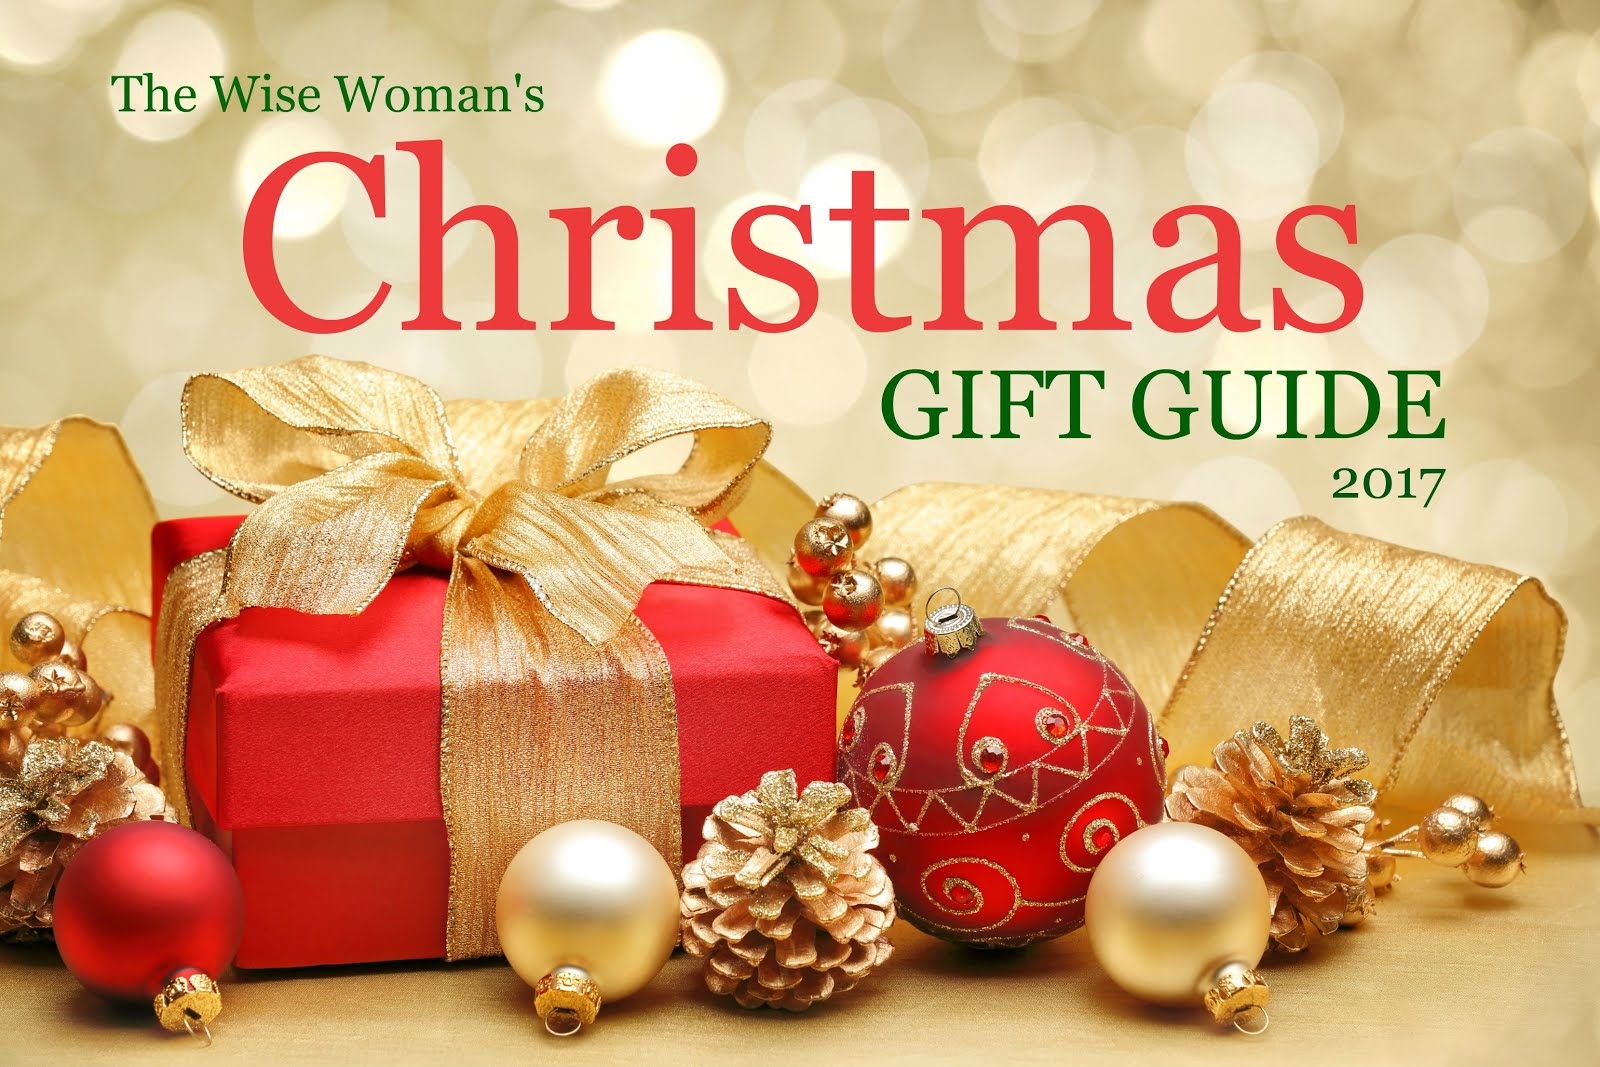 IT'S HERE - THE WISE WOMAN CHRISTMAS GIFT GUIDE 2017!